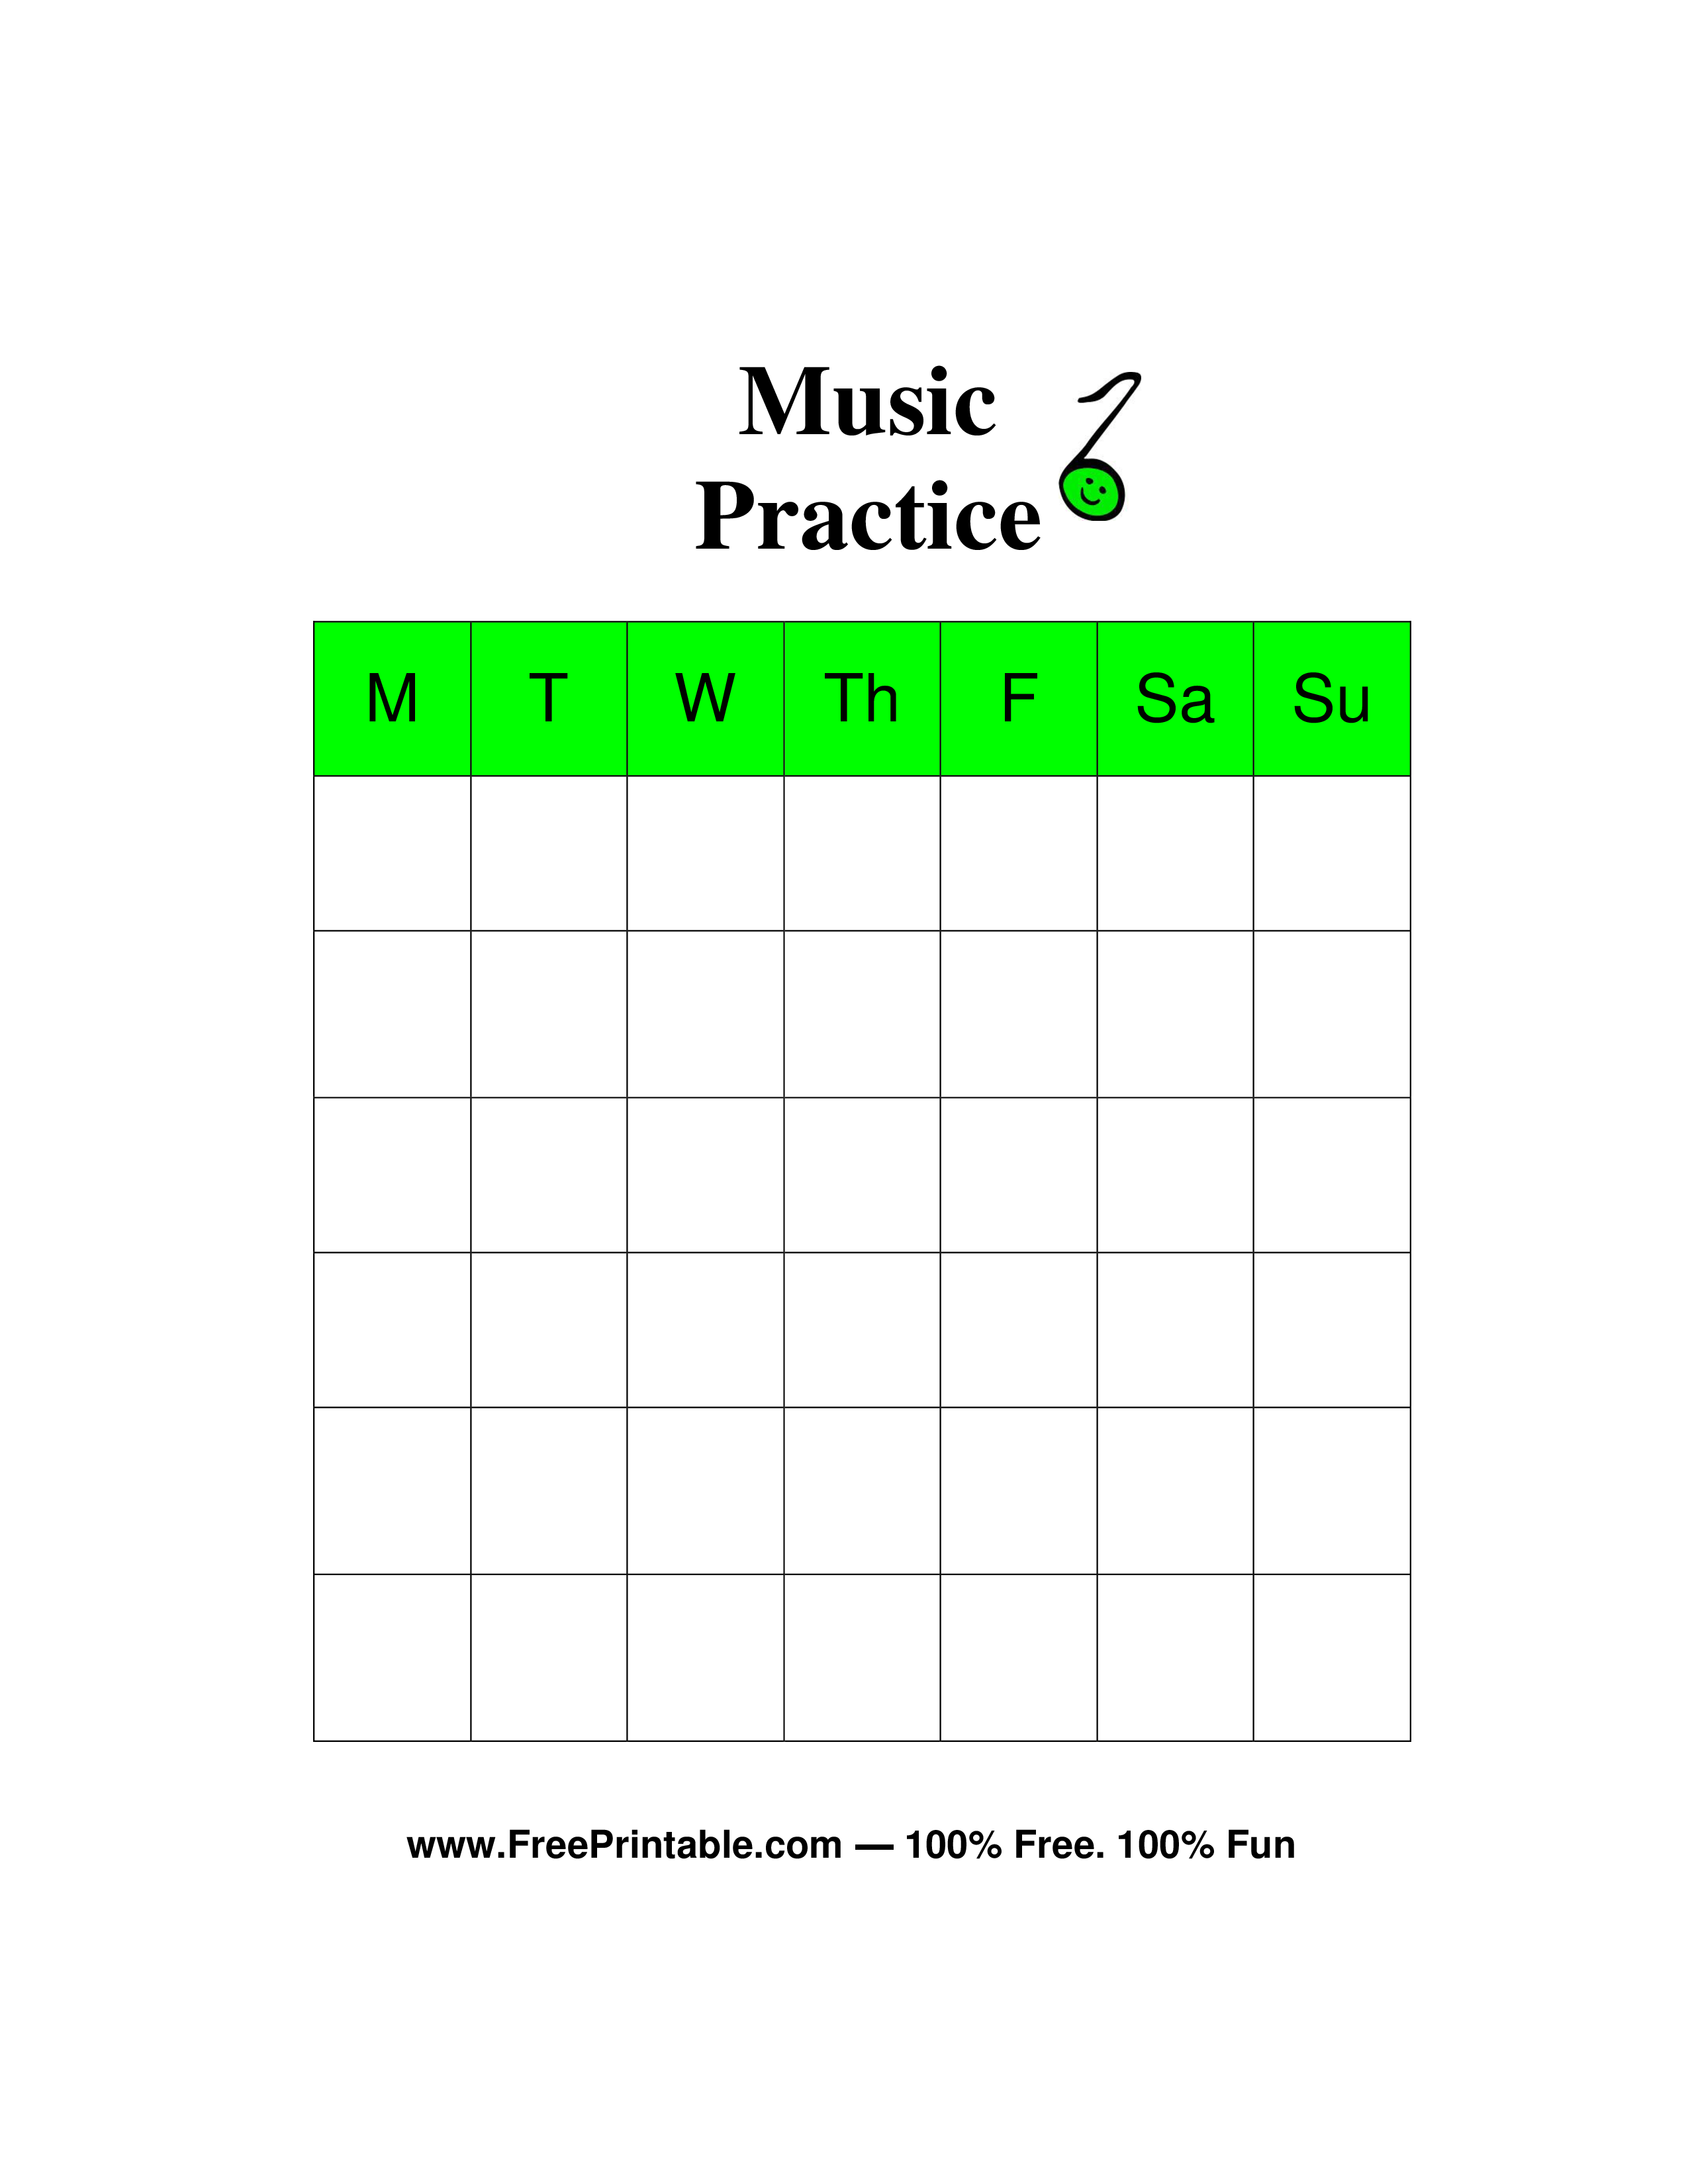 Customize Your Free Printable Music Chore Chart